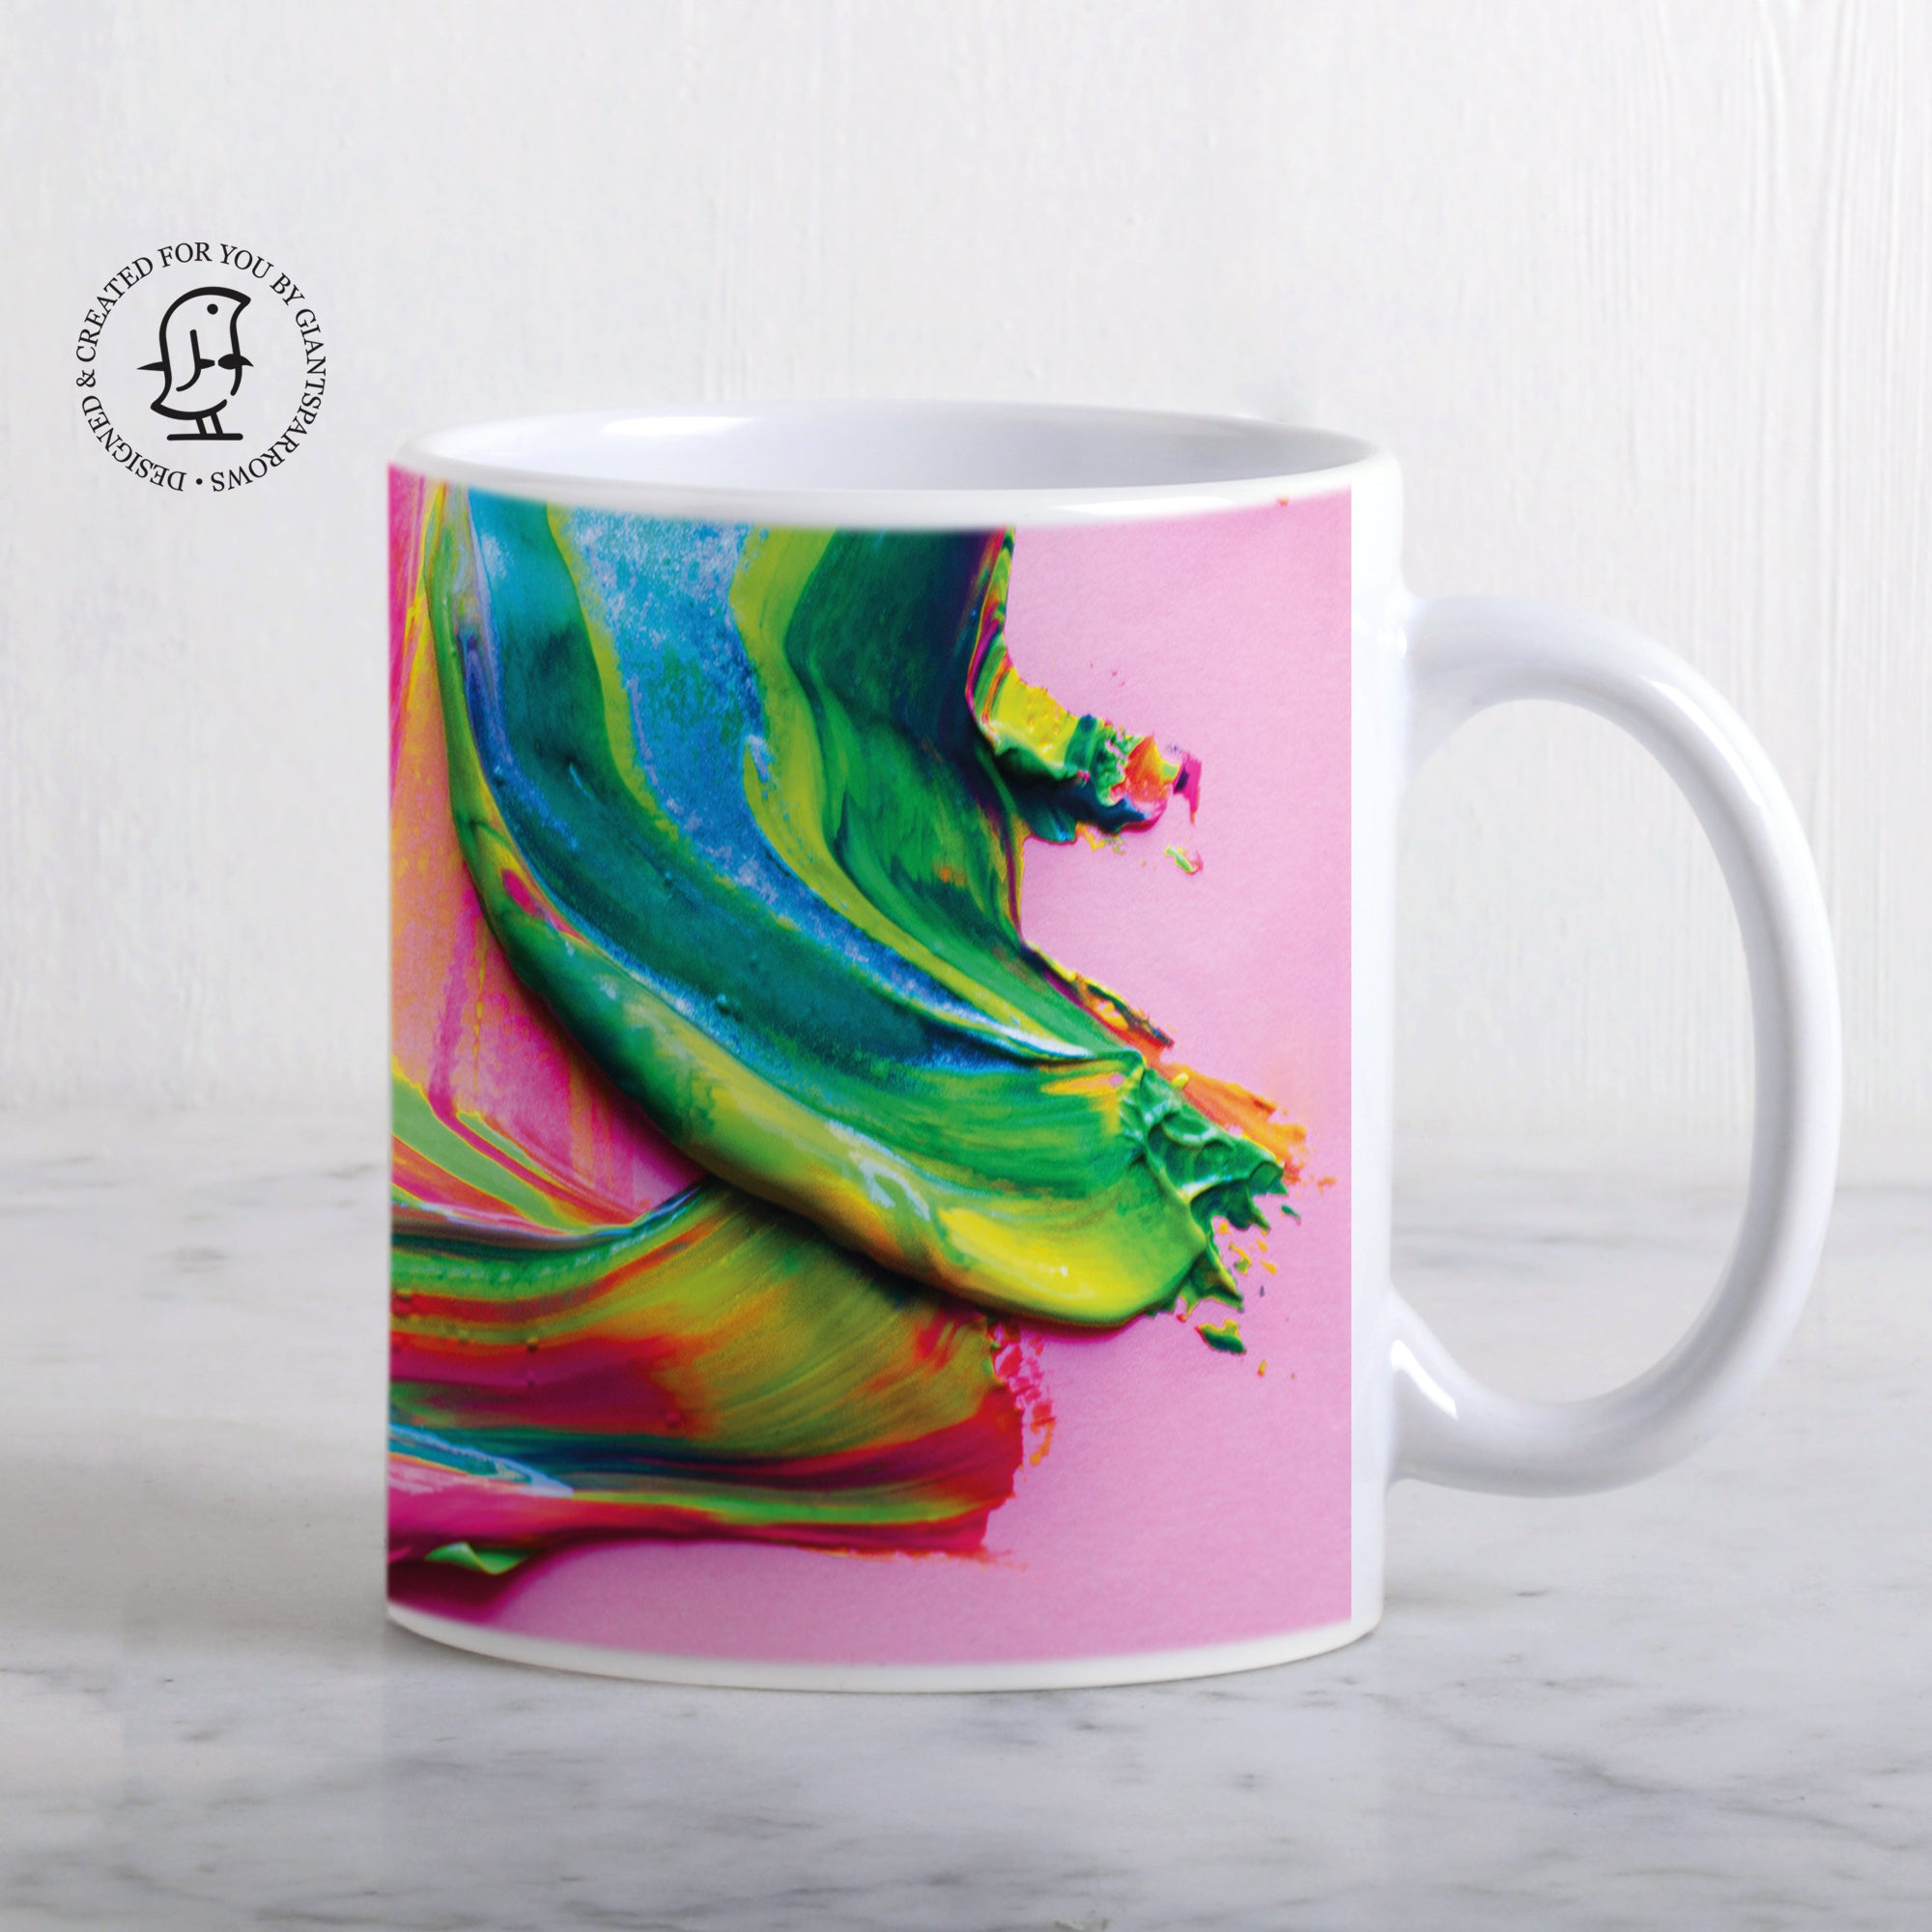 Green, Yellow & Pink Paint Splat Design Mug